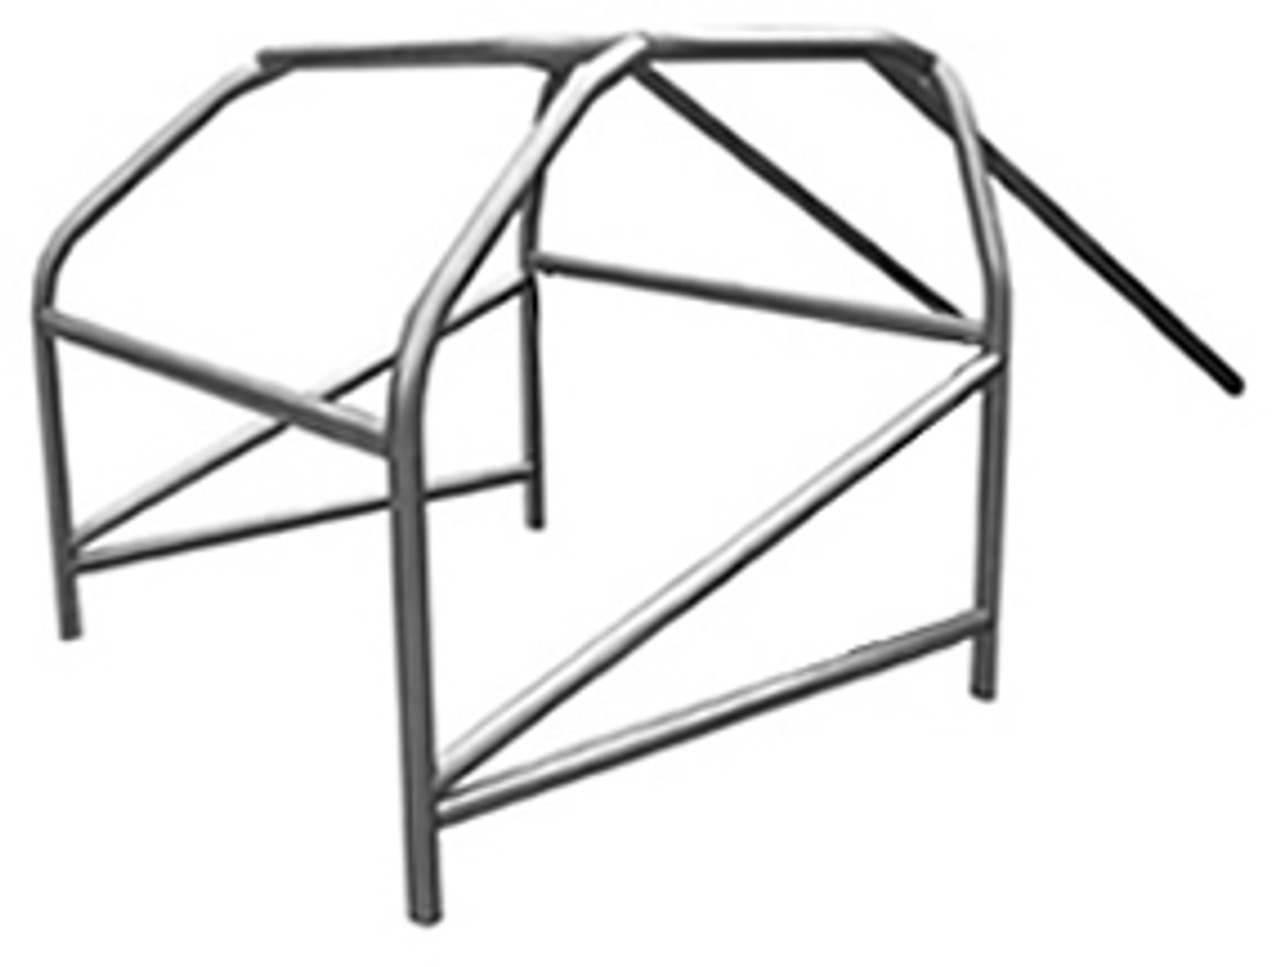 Off Road Truck Roll Cage Kit Chevrolet S-10 82-93